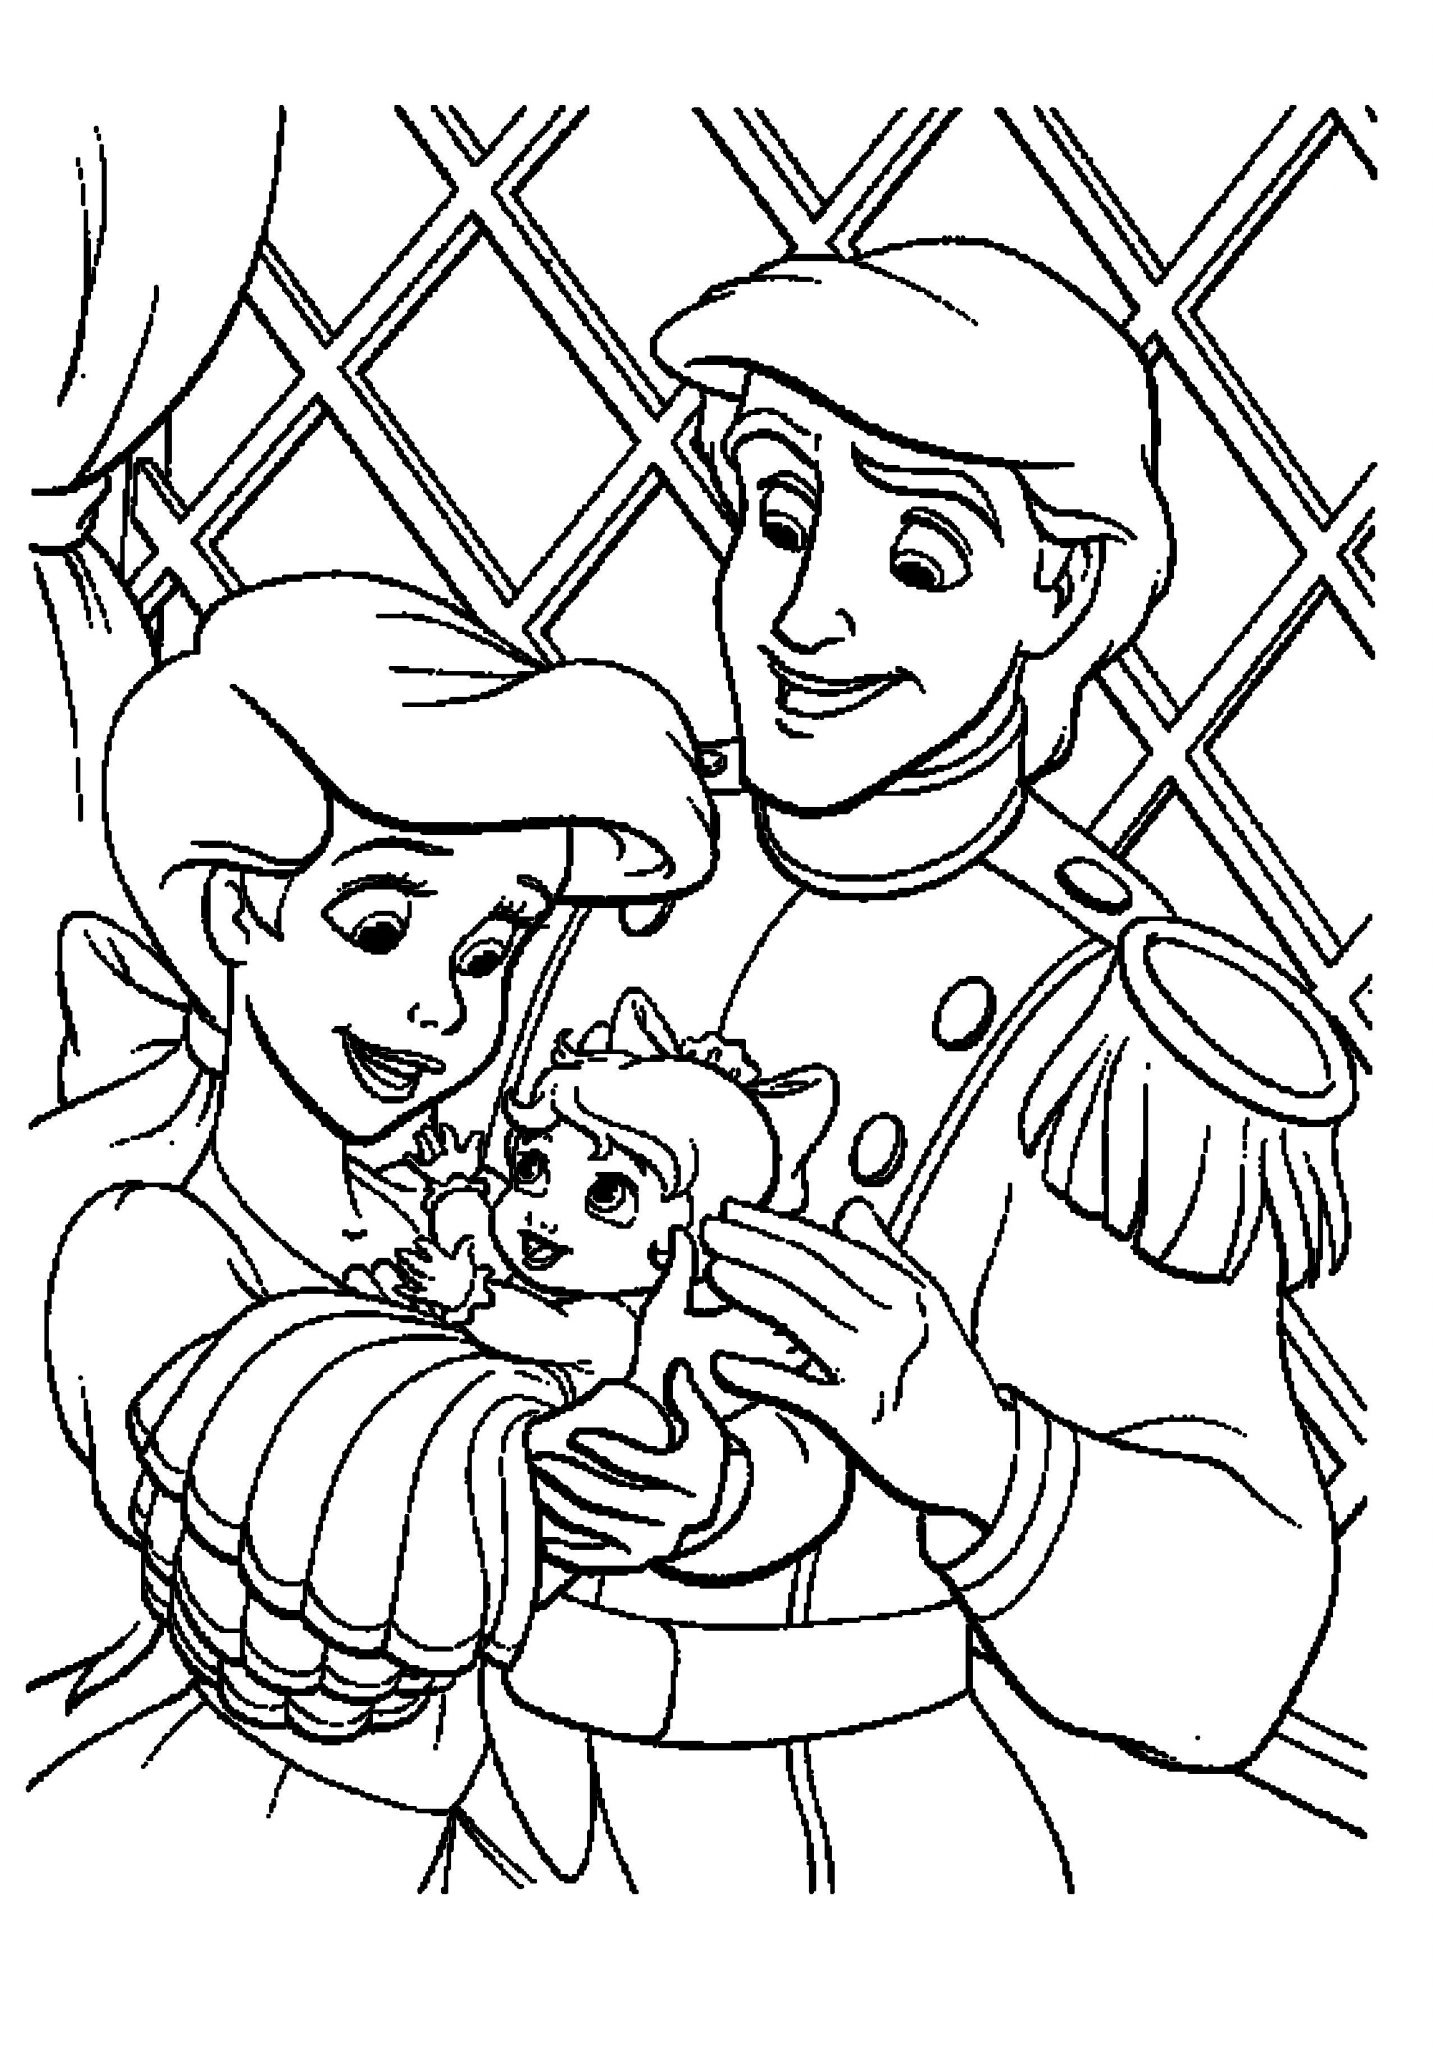 ariel coloring pages free coloring pages ariel the little mermaid free printable coloring pages free ariel